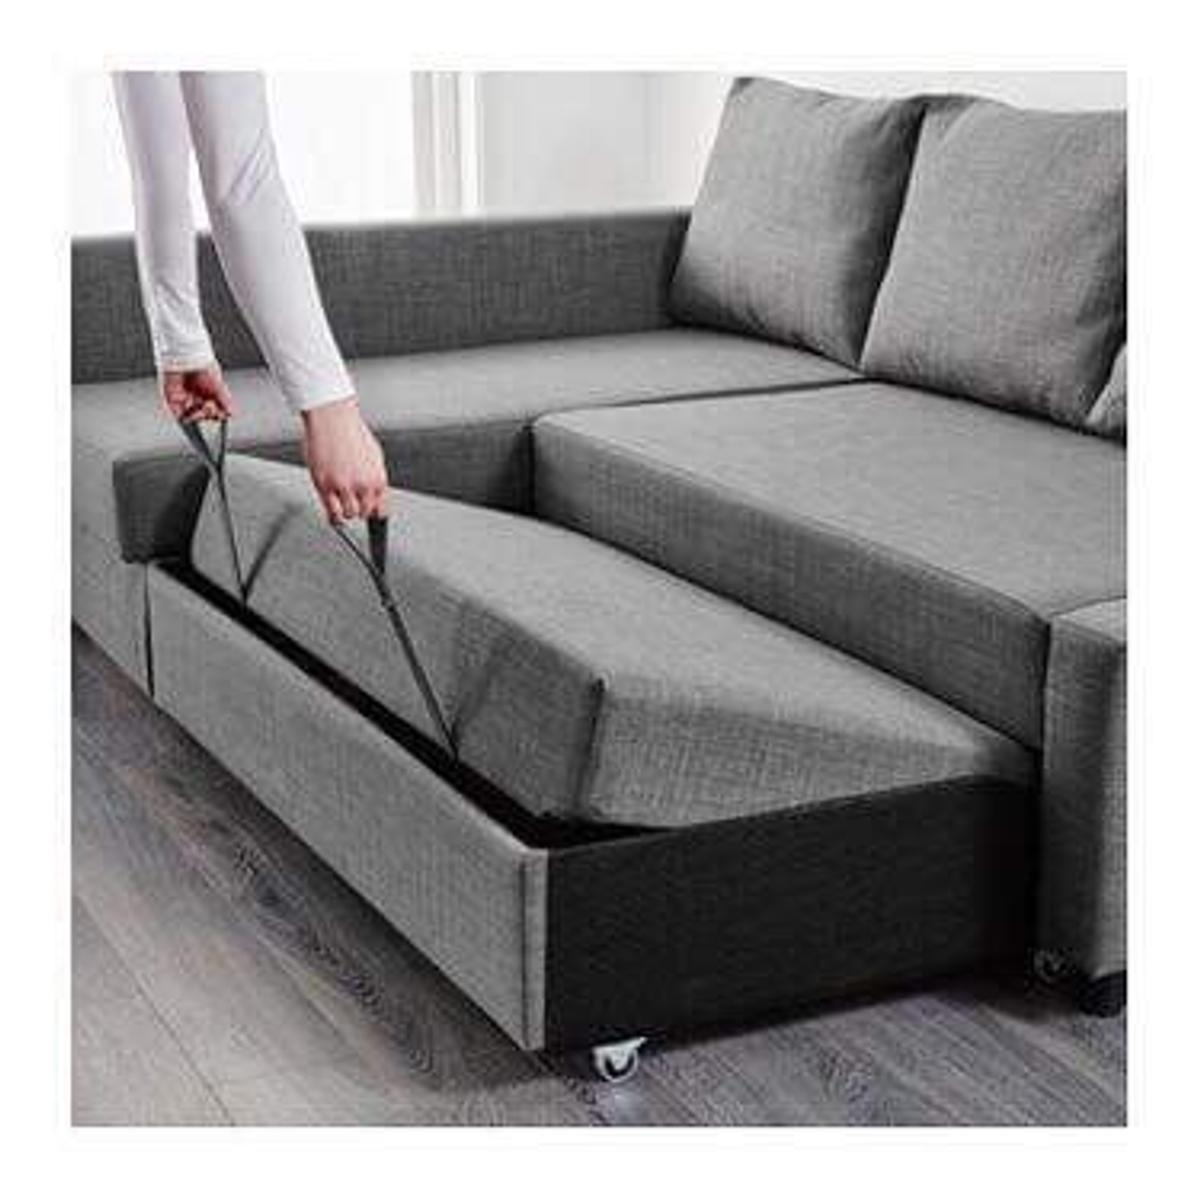 Corner sofa bed/storage in CF83 Bedwas for £350.00 for sale - Shpock